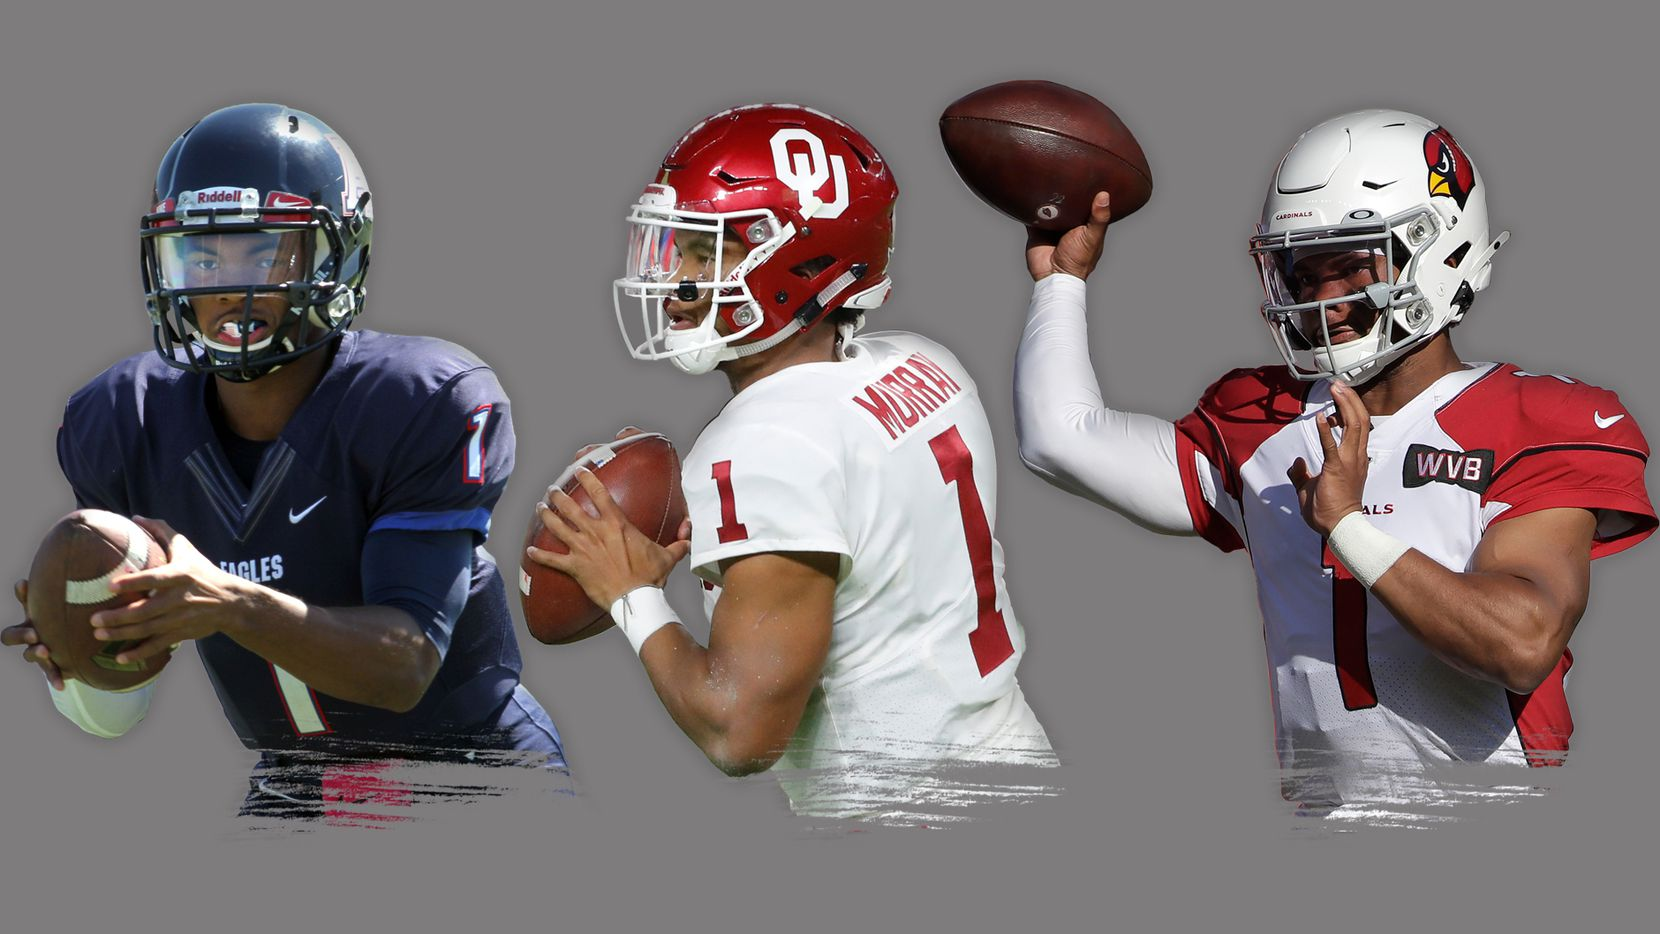 Kyler Murray with Allen High School in 2014 (far left), the Oklahoma Sooners in 2018 (middle) and the Arizona Cardinals in 2019 (far right).   Photos by Steve Hamm (special contributor to The Dallas Morning News), Wilfredo Lee (AP Photo) and Jeff Chiu (AP Photo).